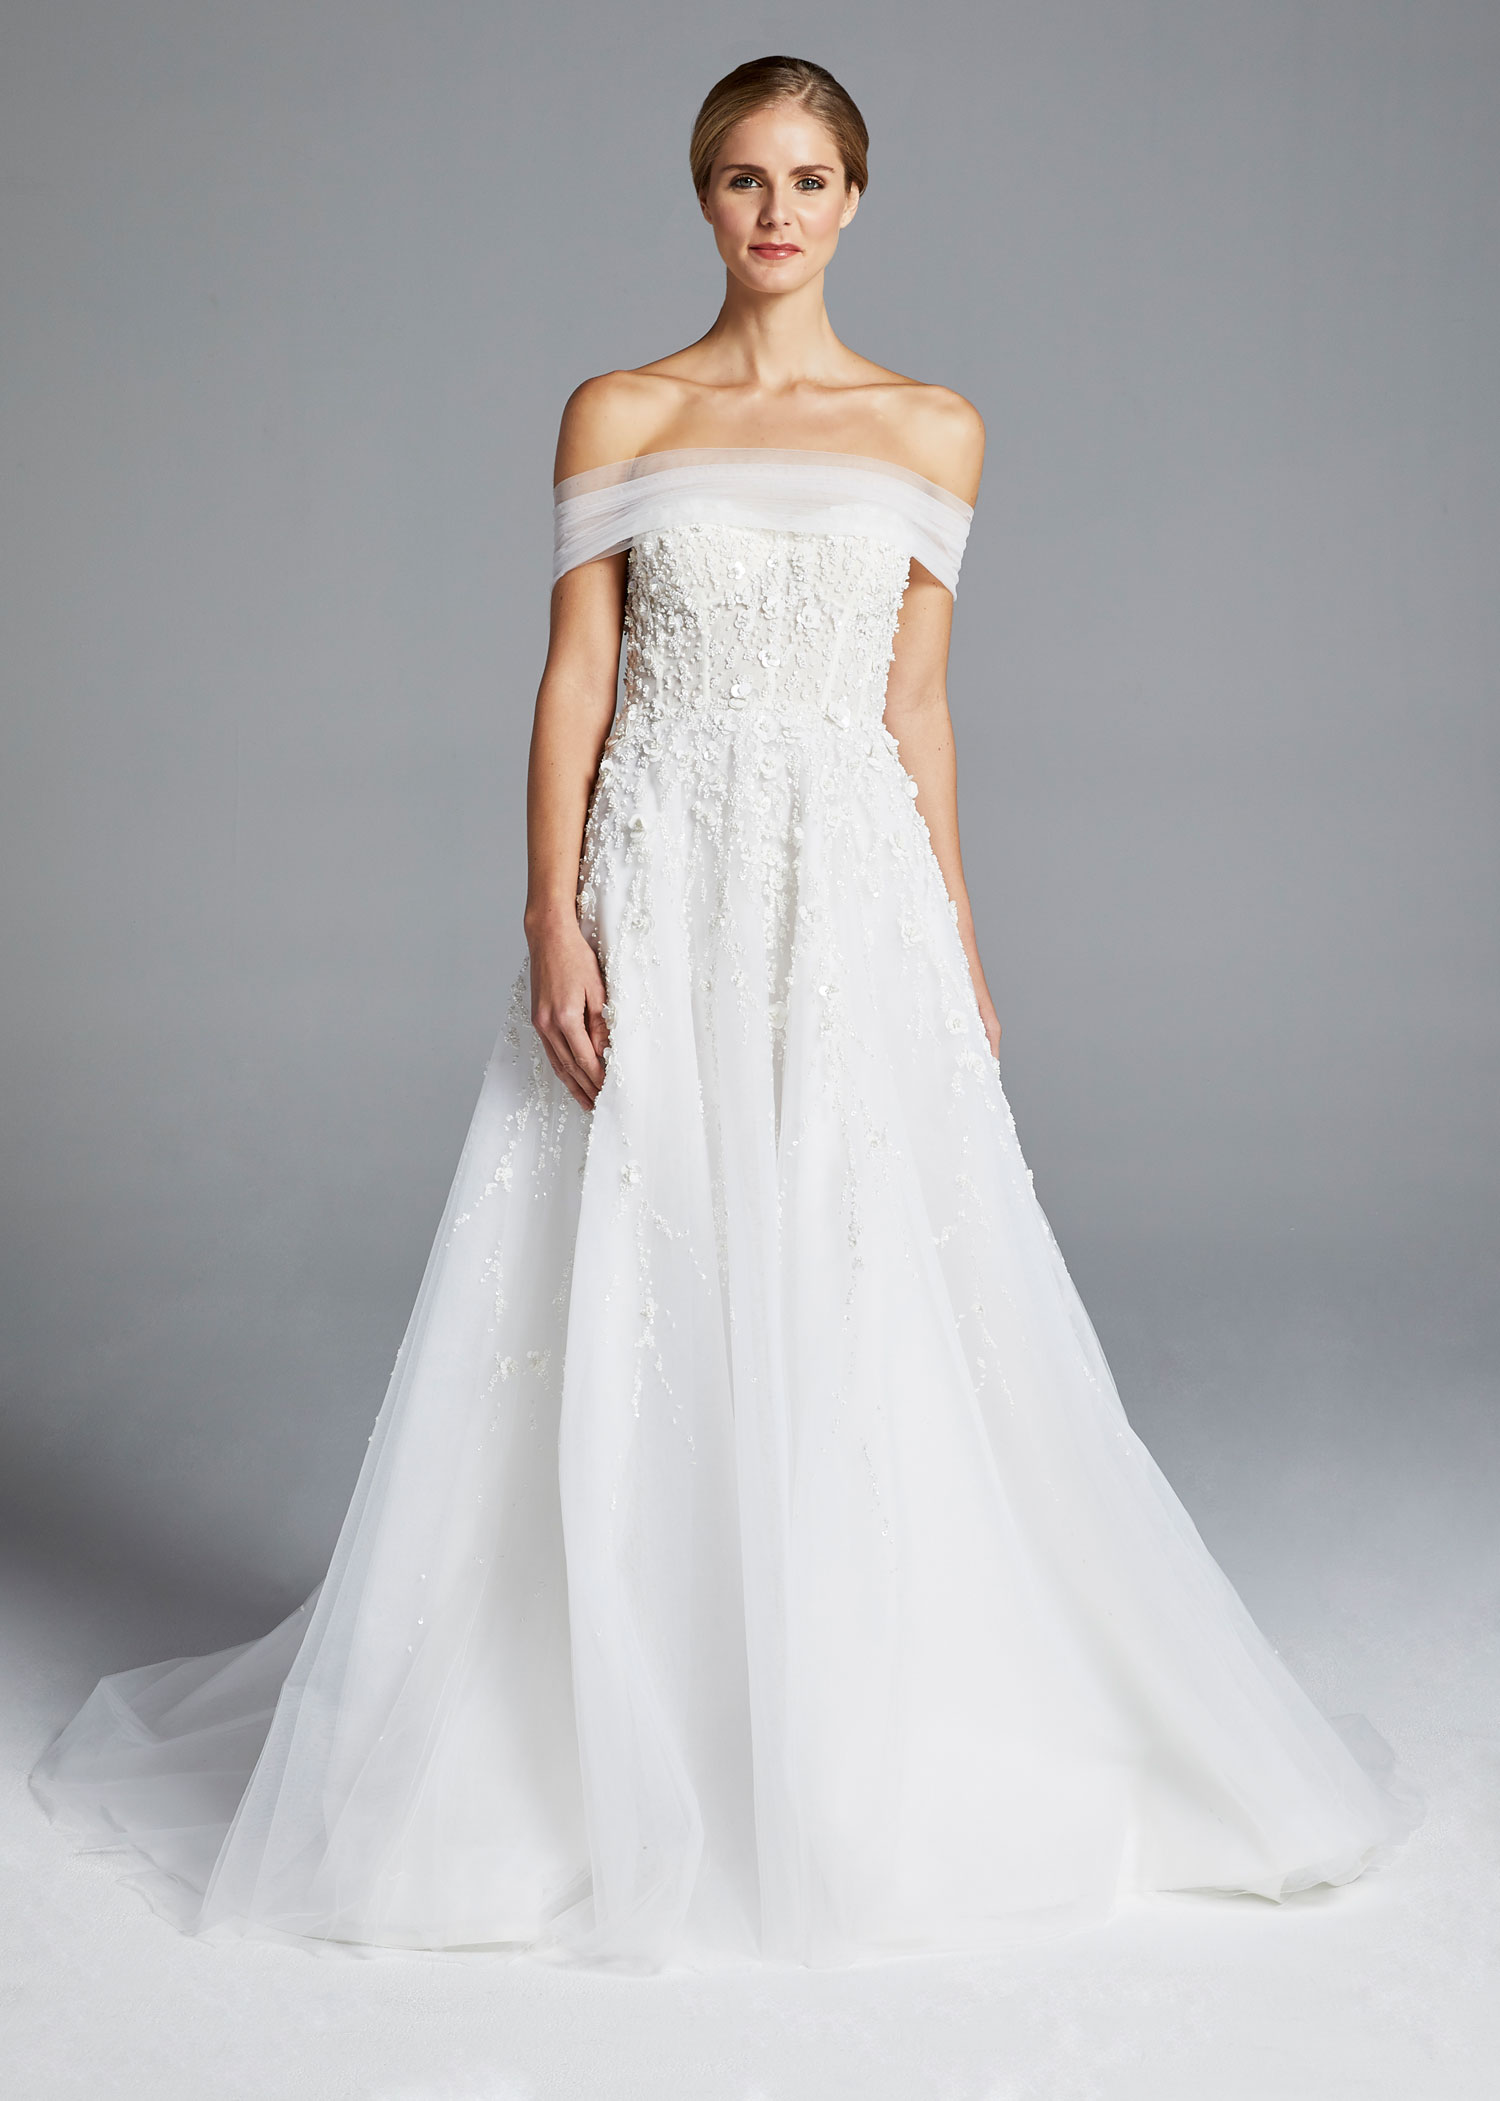 fc09f554e00 Anne Barge Spring 2019 collection a line gown with embroidery and corset